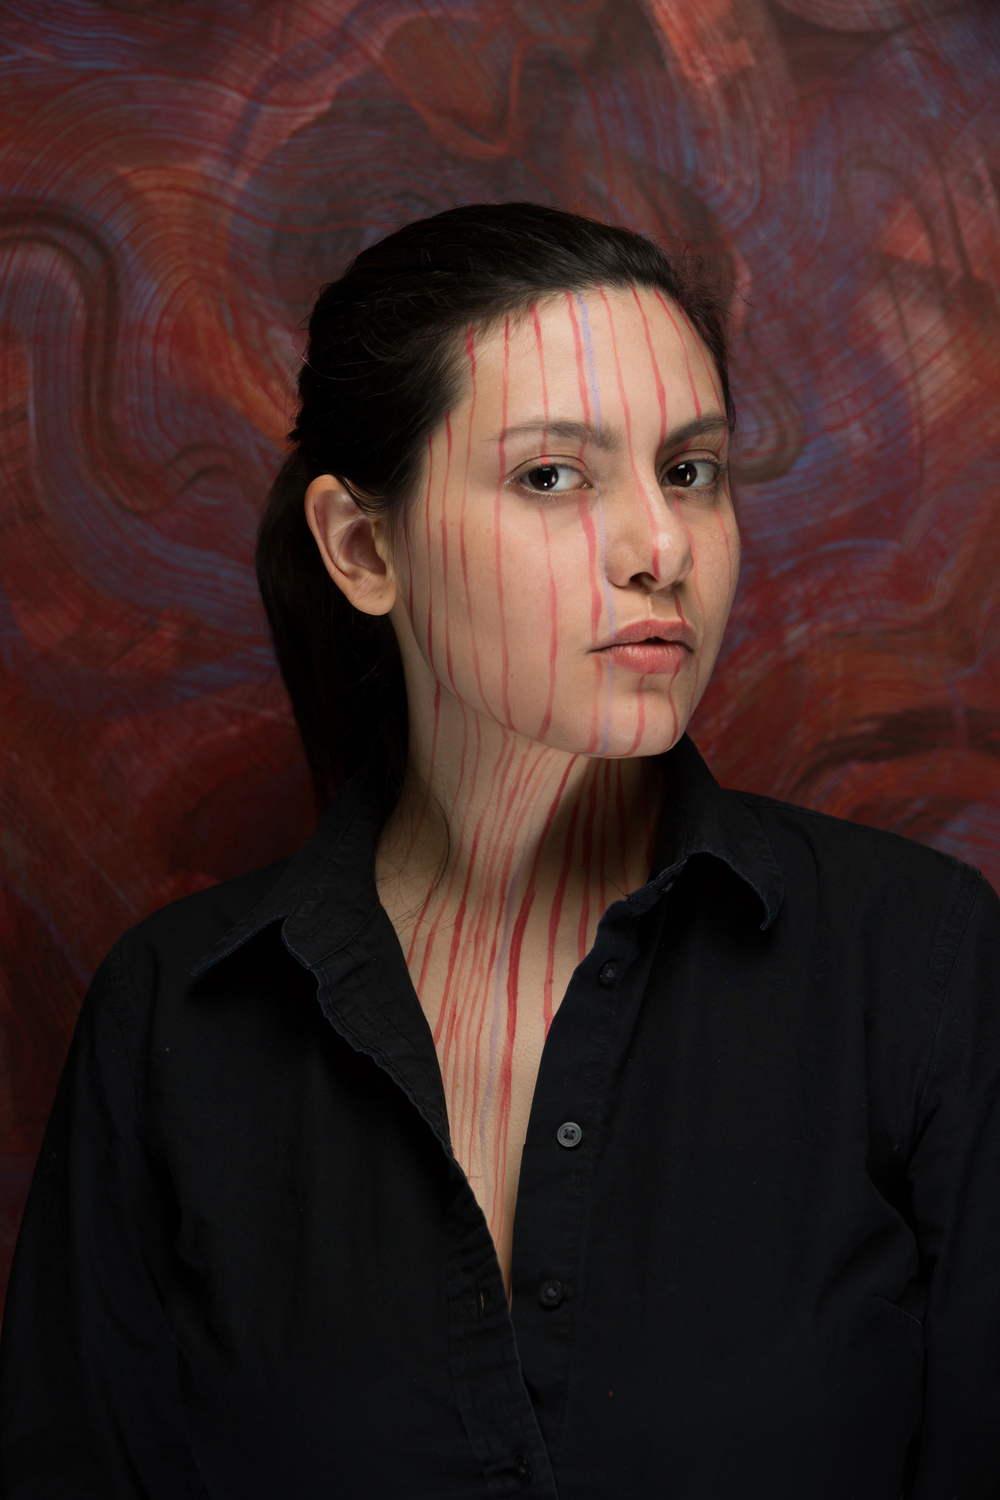 feelings and emotions with facemotion art series.jpg